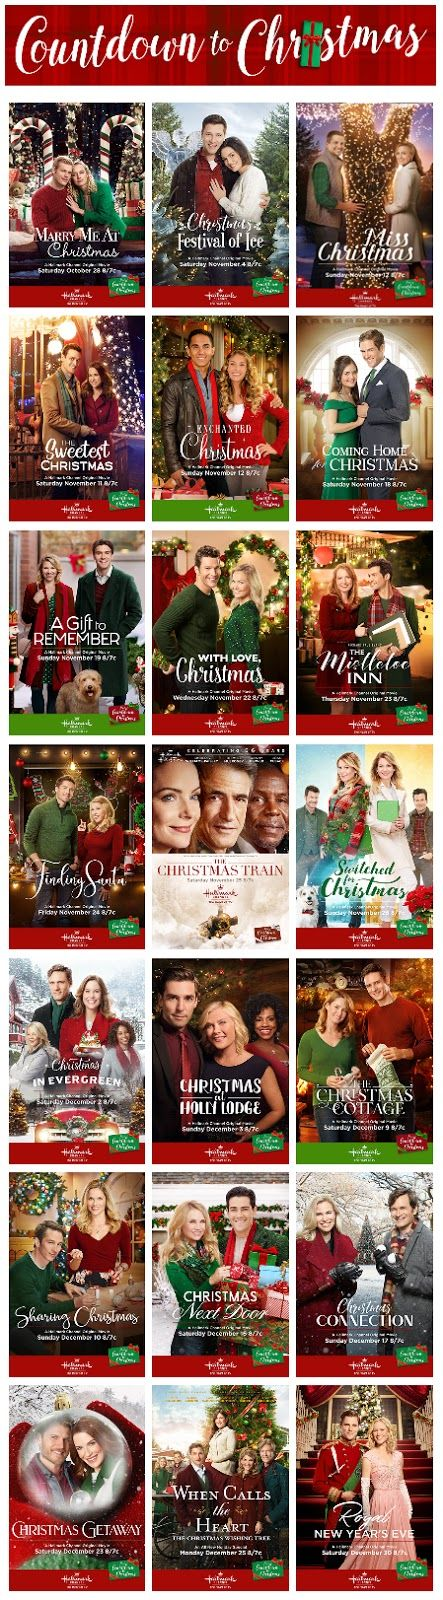 Andrew Walker Snowed Inn Christmas.Its A Wonderful Movie Your Guide To Family And Christmas